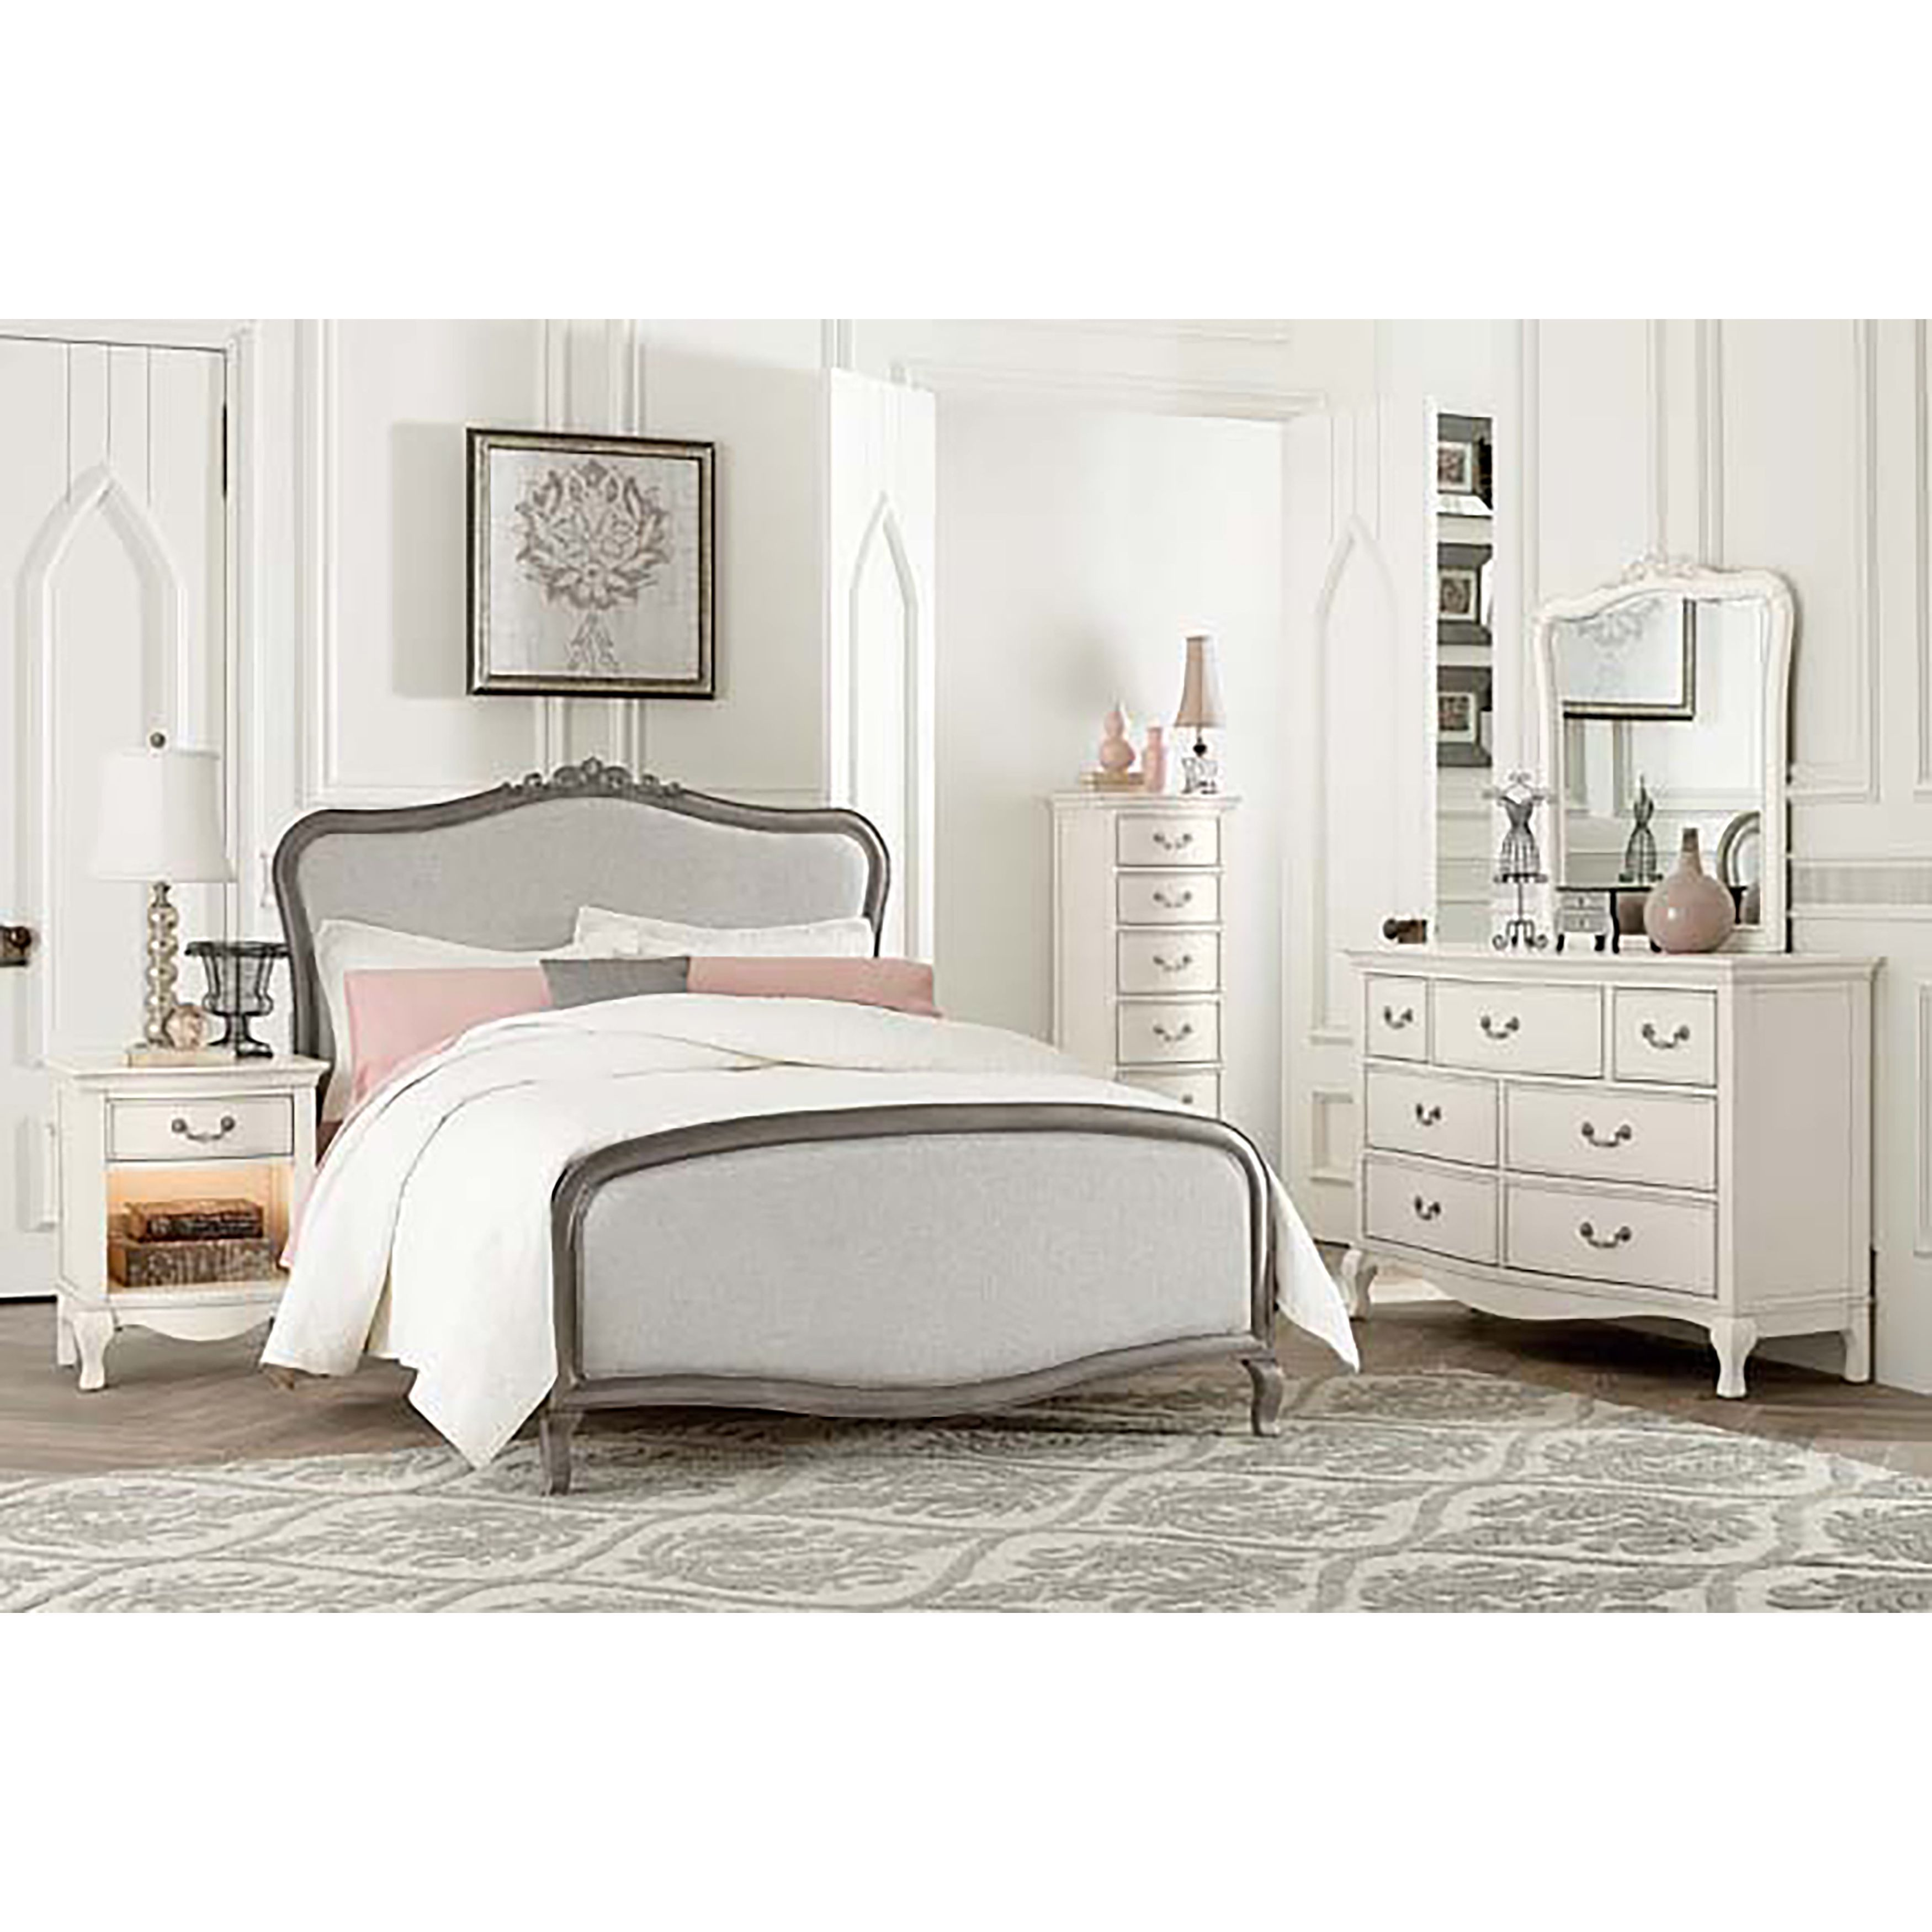 Photo of Kids' & Toddler Beds